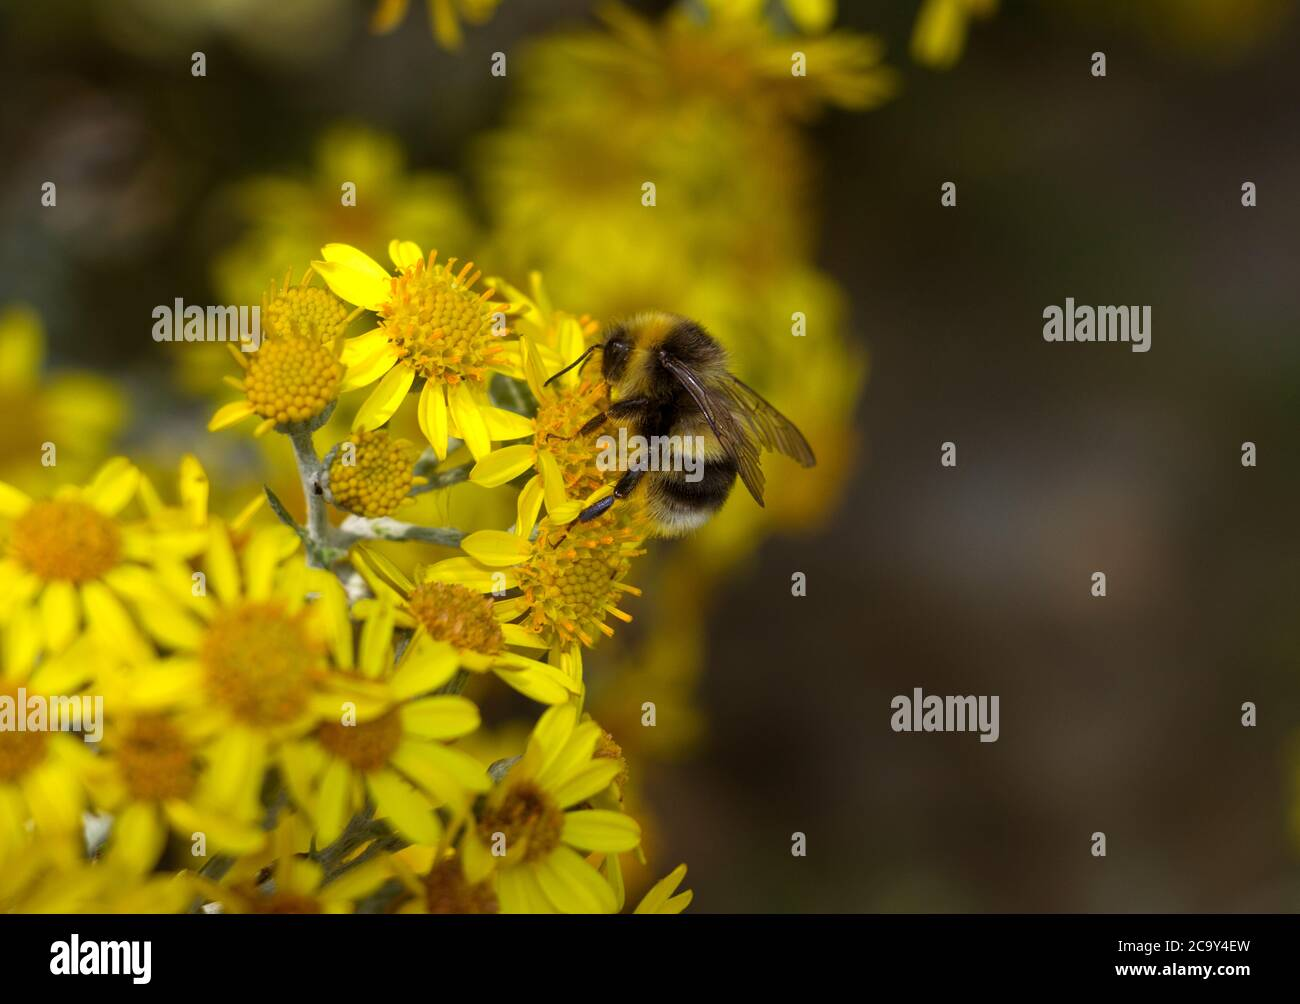 A White-tailed Bumble Bee collects pollen and nectar from the flowers of a Common Ragwort which assists with the plants pollination. Stock Photo